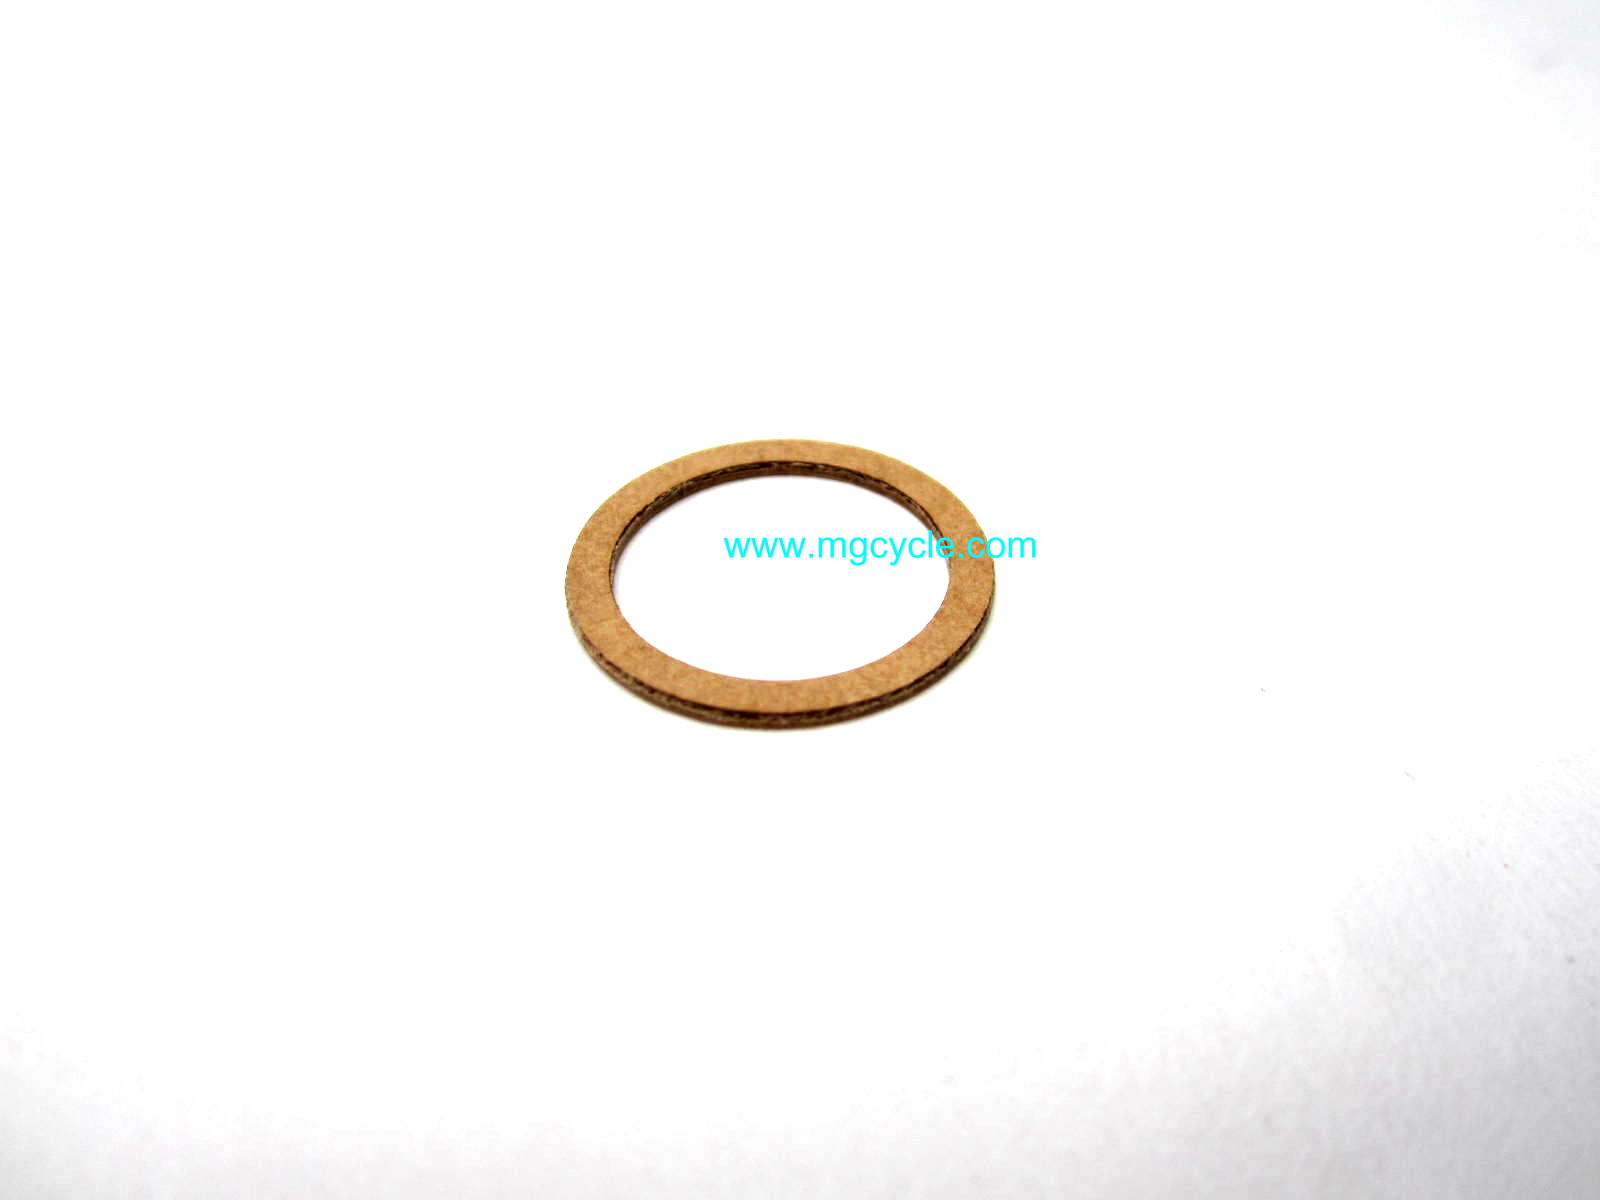 Dellorto 4057 bowl nut gasket VHB and early PHF 13933900